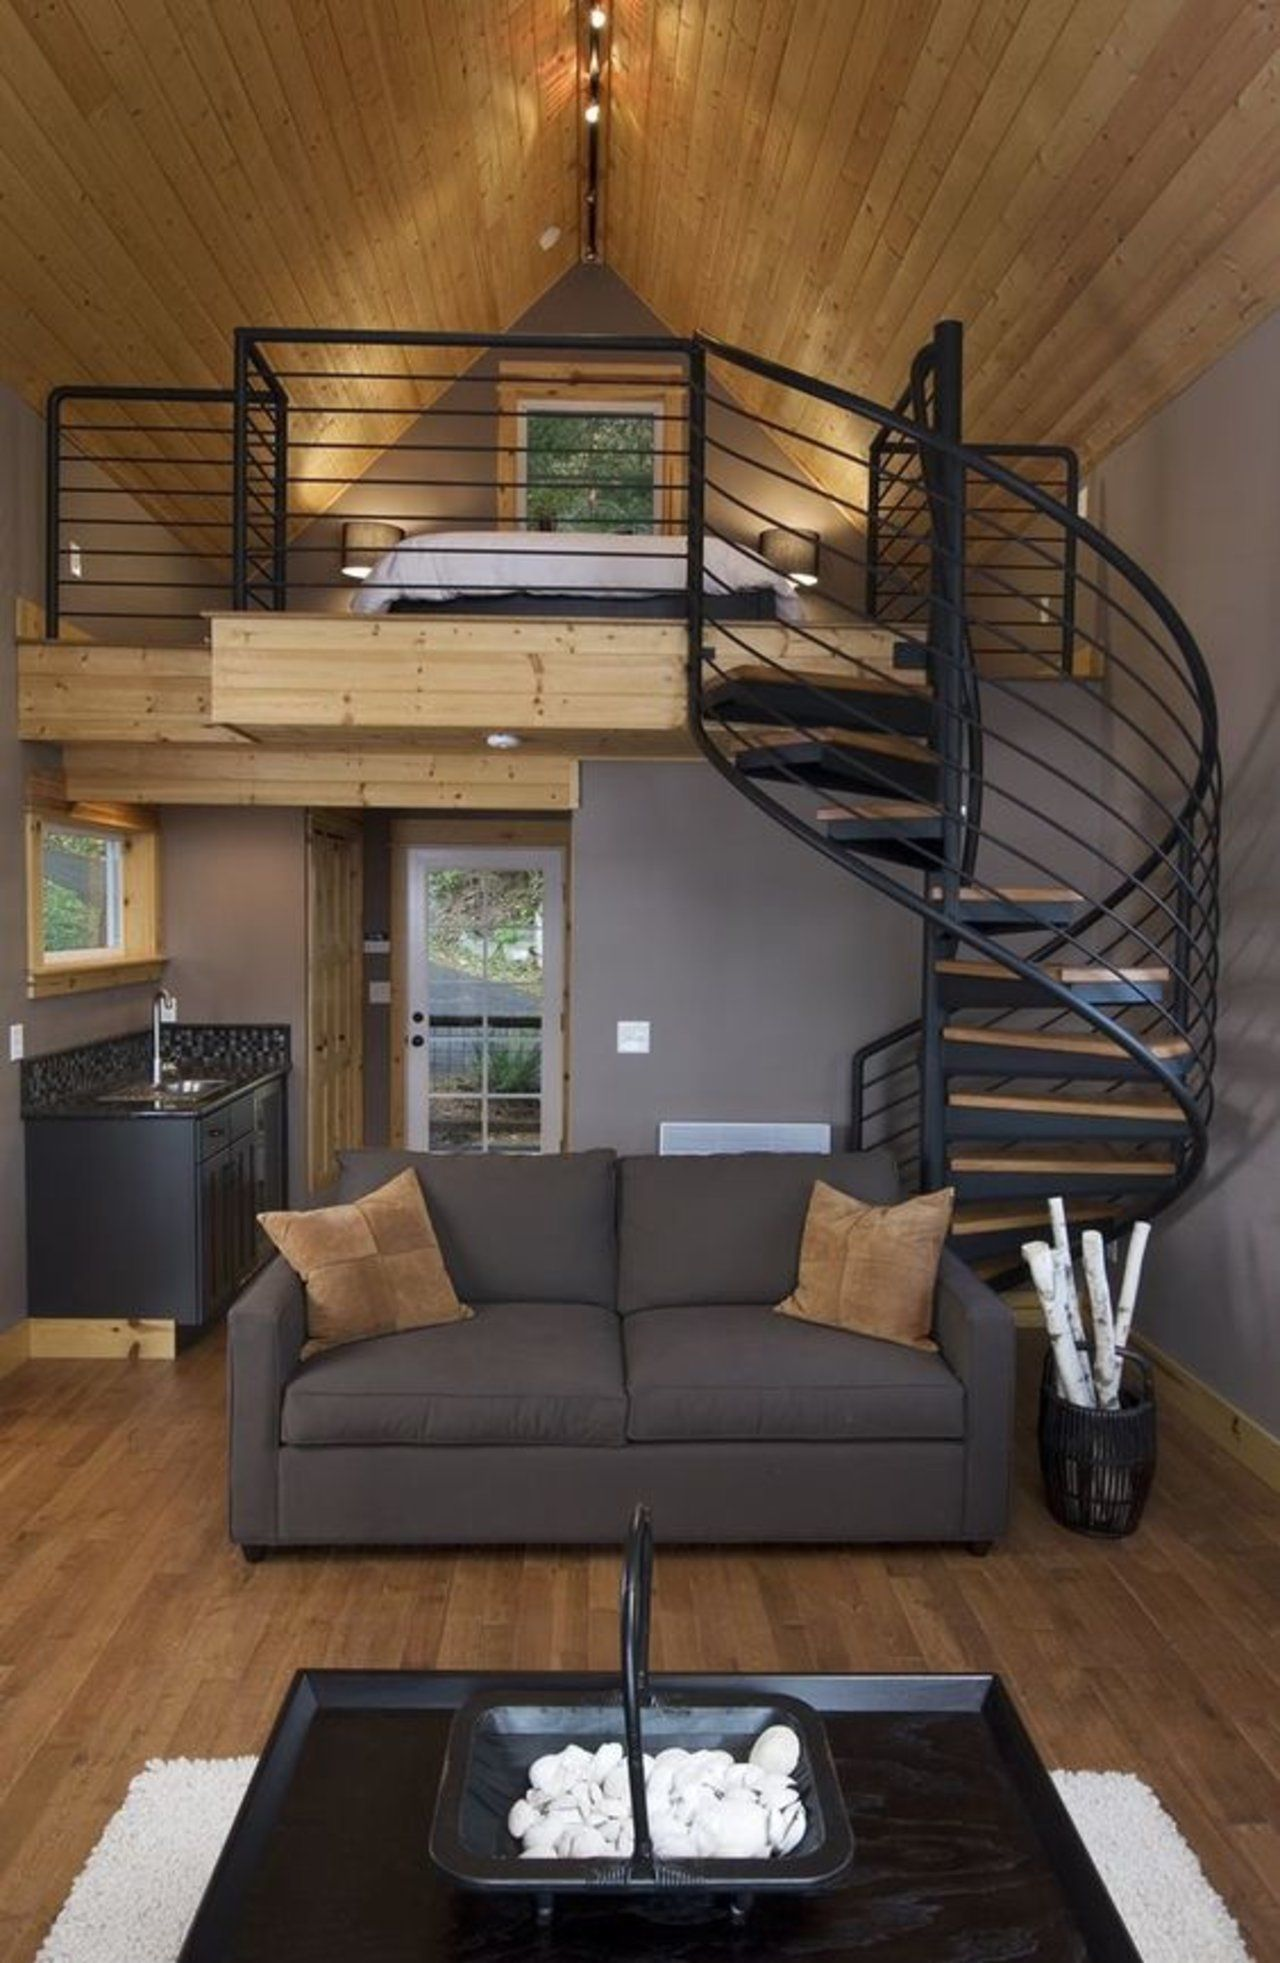 Tiny House Interior the best tiny house build | white appliances, wood stairs and